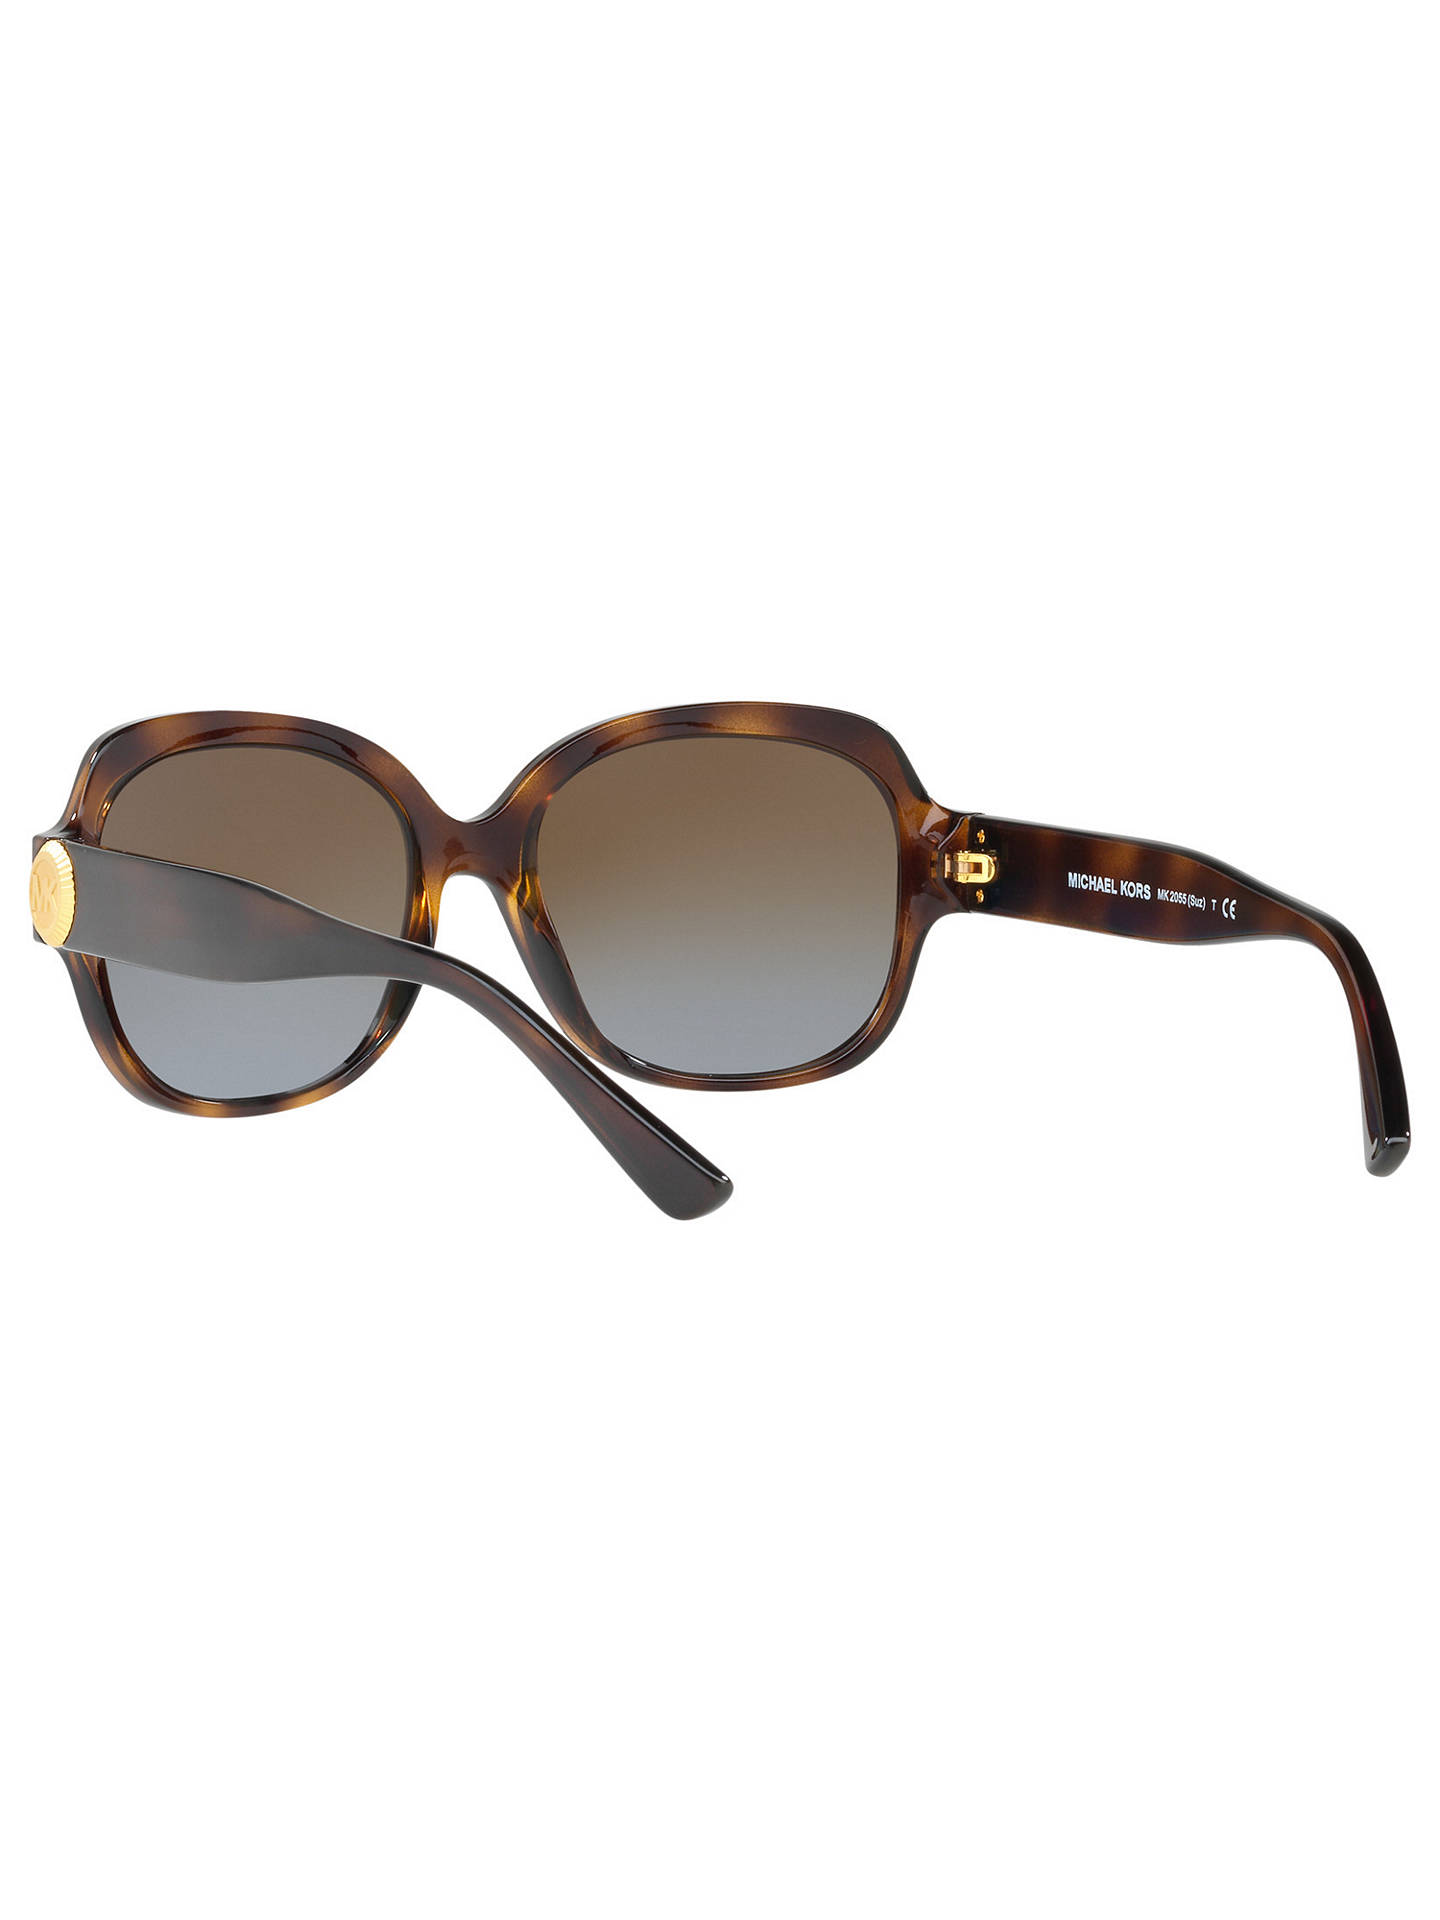 664ba305e4 ... Buy Michael Kors MK2055 Suz Polarised Square Sunglasses